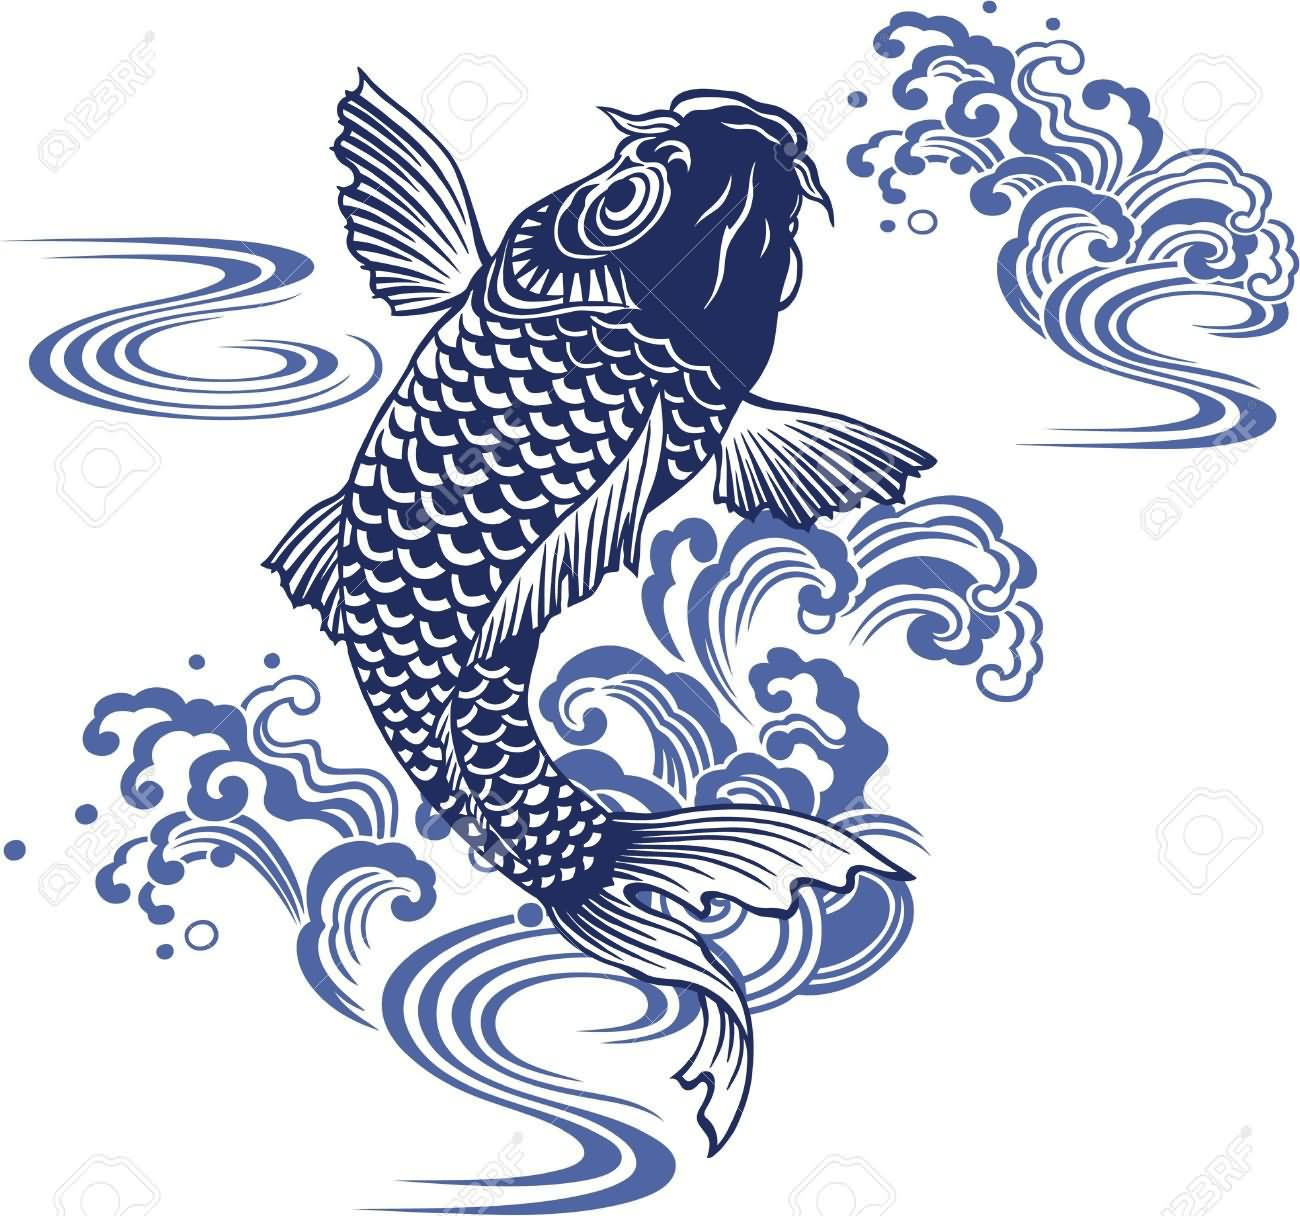 Carp fish tattoo images galleries for Carp pond design